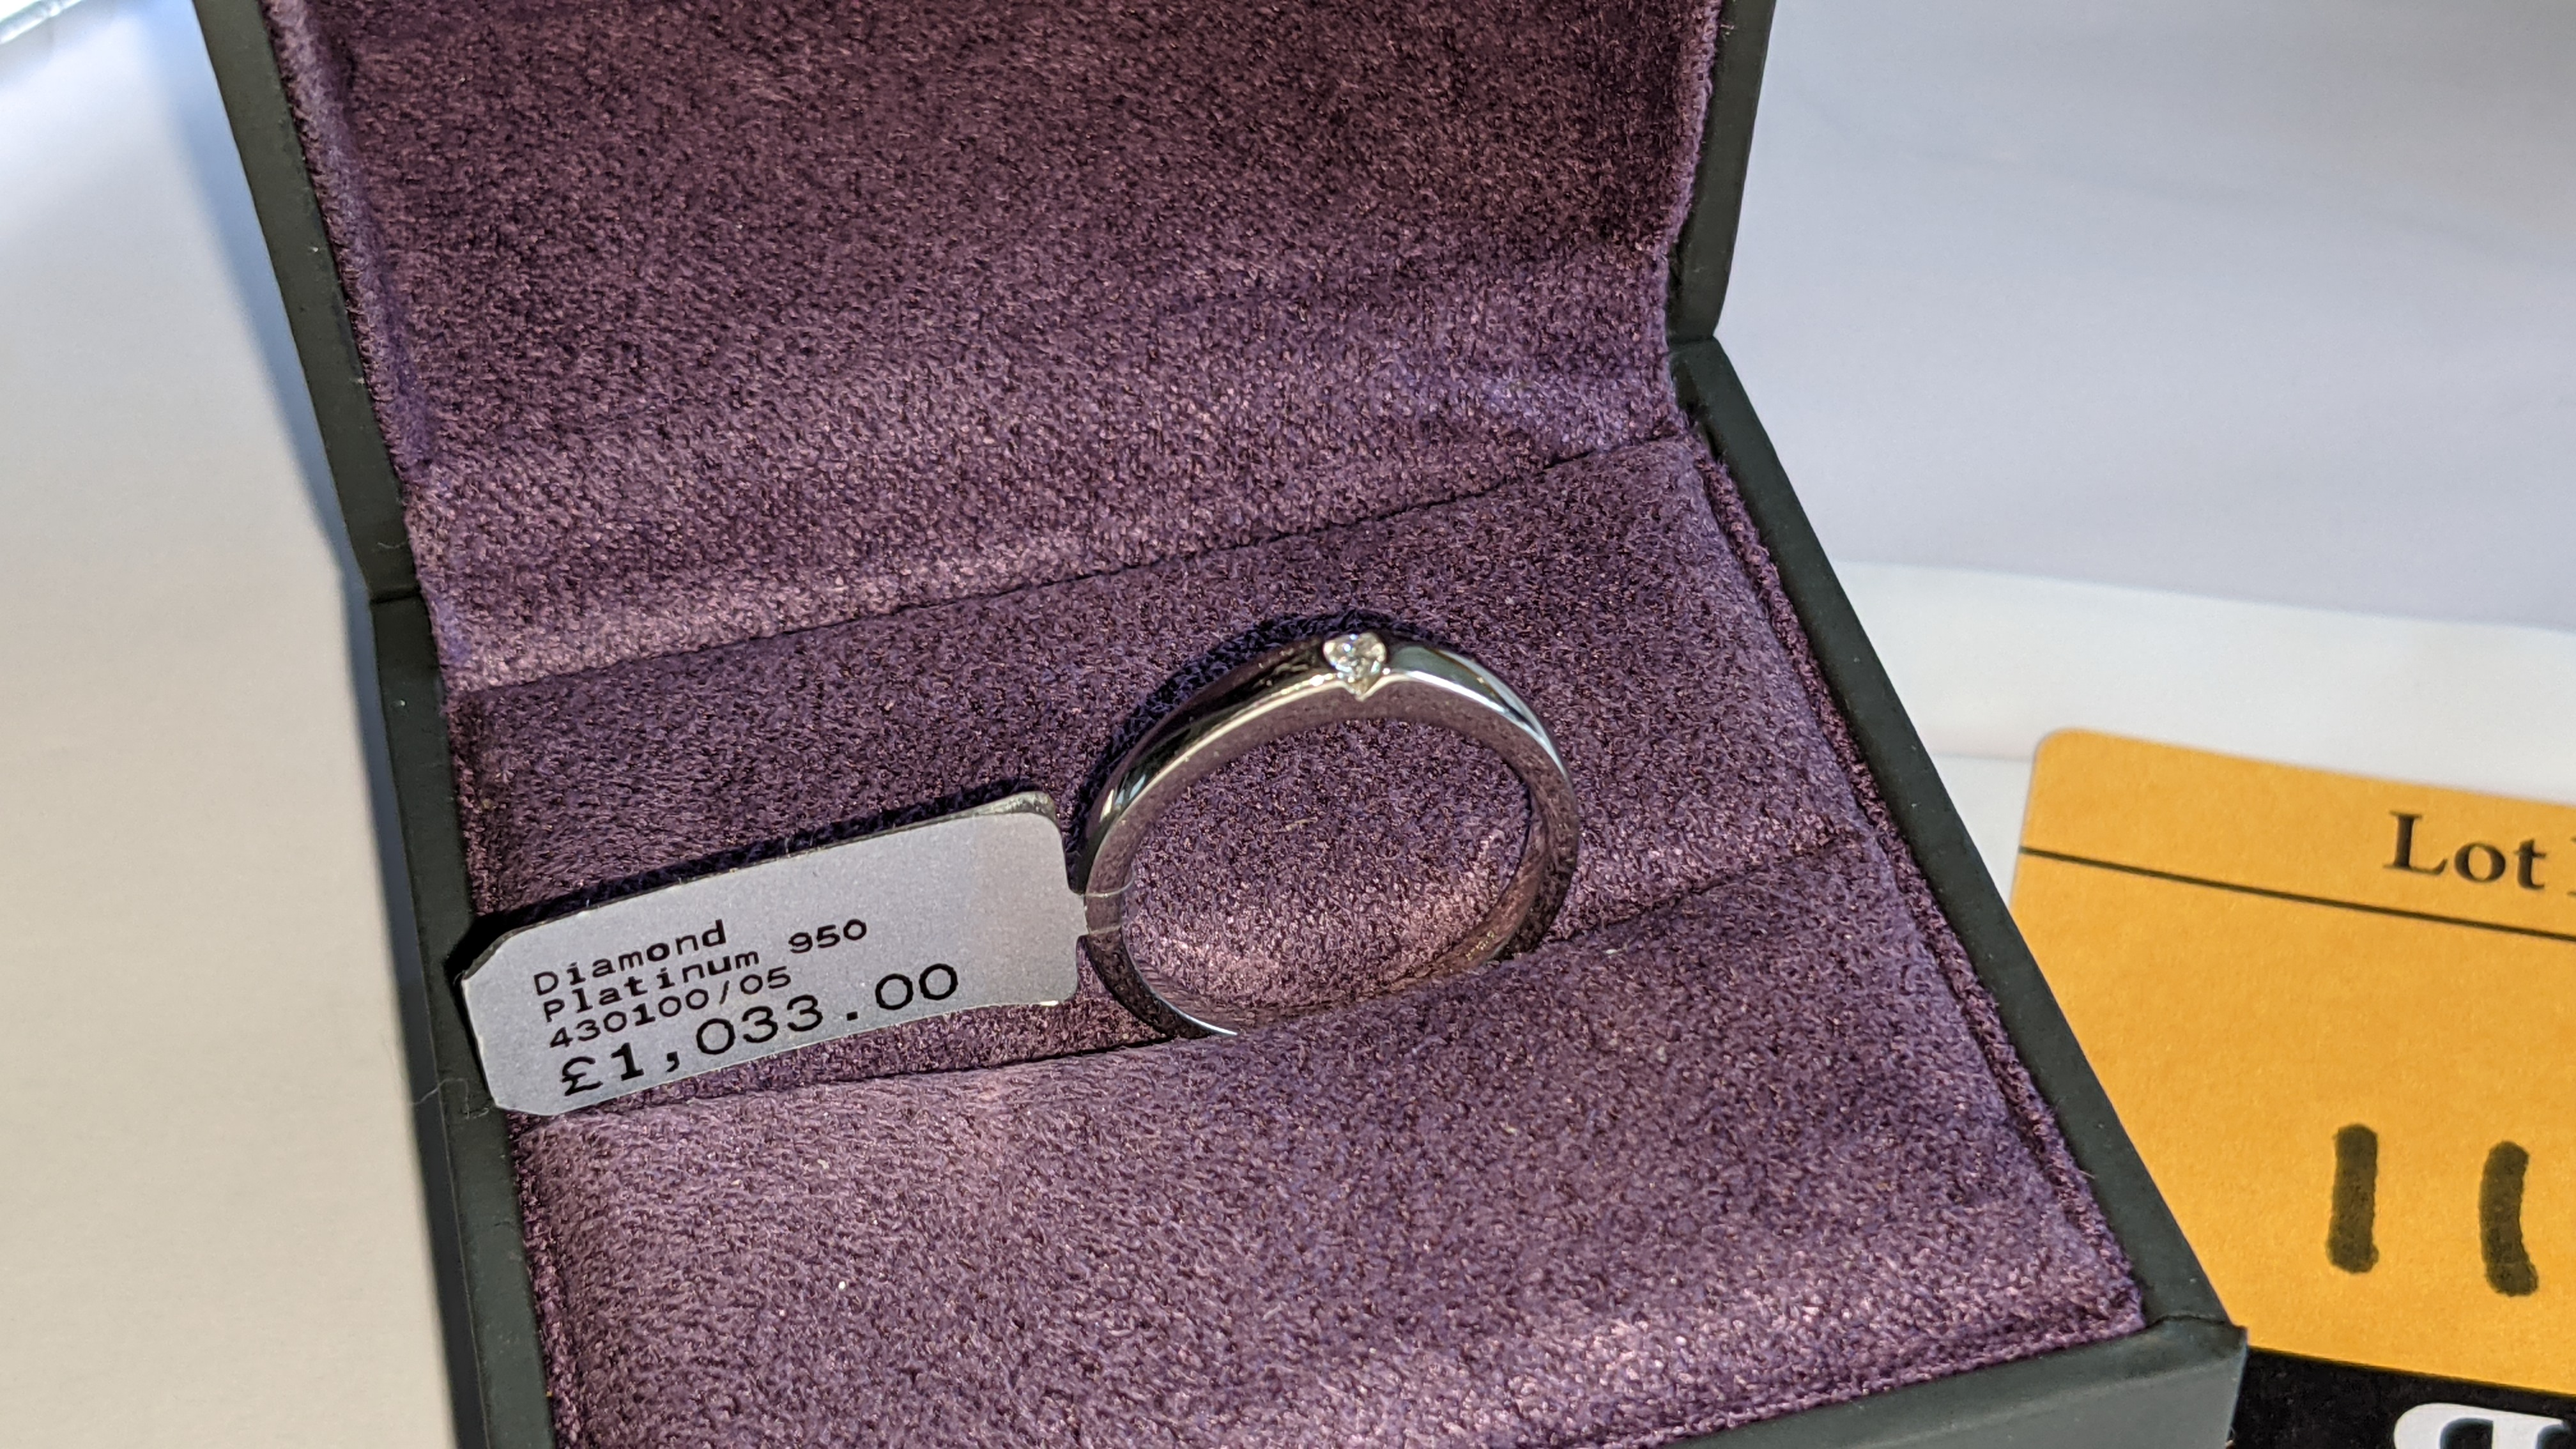 Platinum 950 ring with 0.05ct H/Si diamond. RRP £1,033 - Image 2 of 13